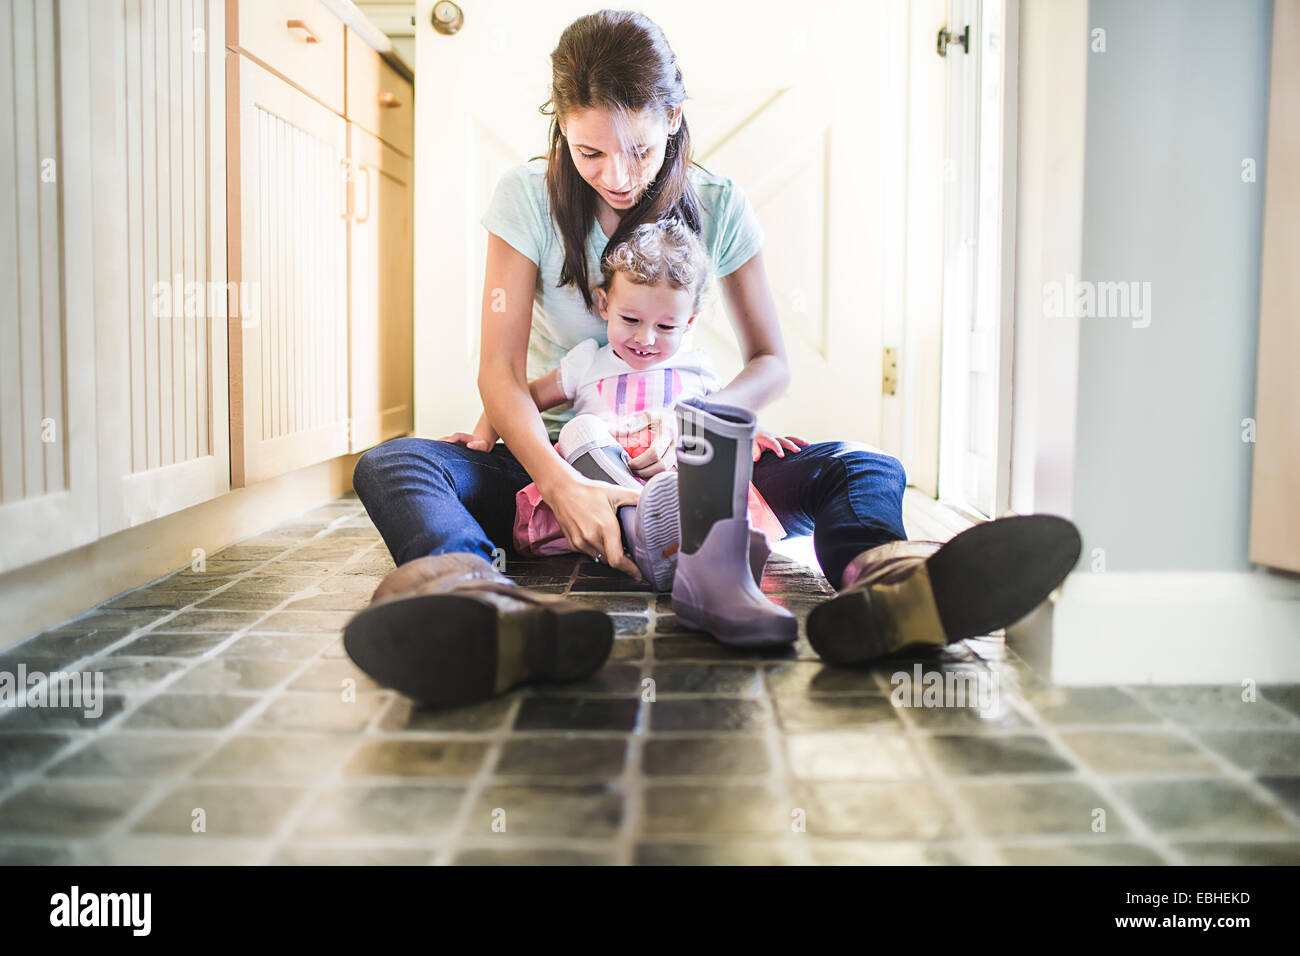 Mother and daughter putting on boots in kitchen - Stock Image